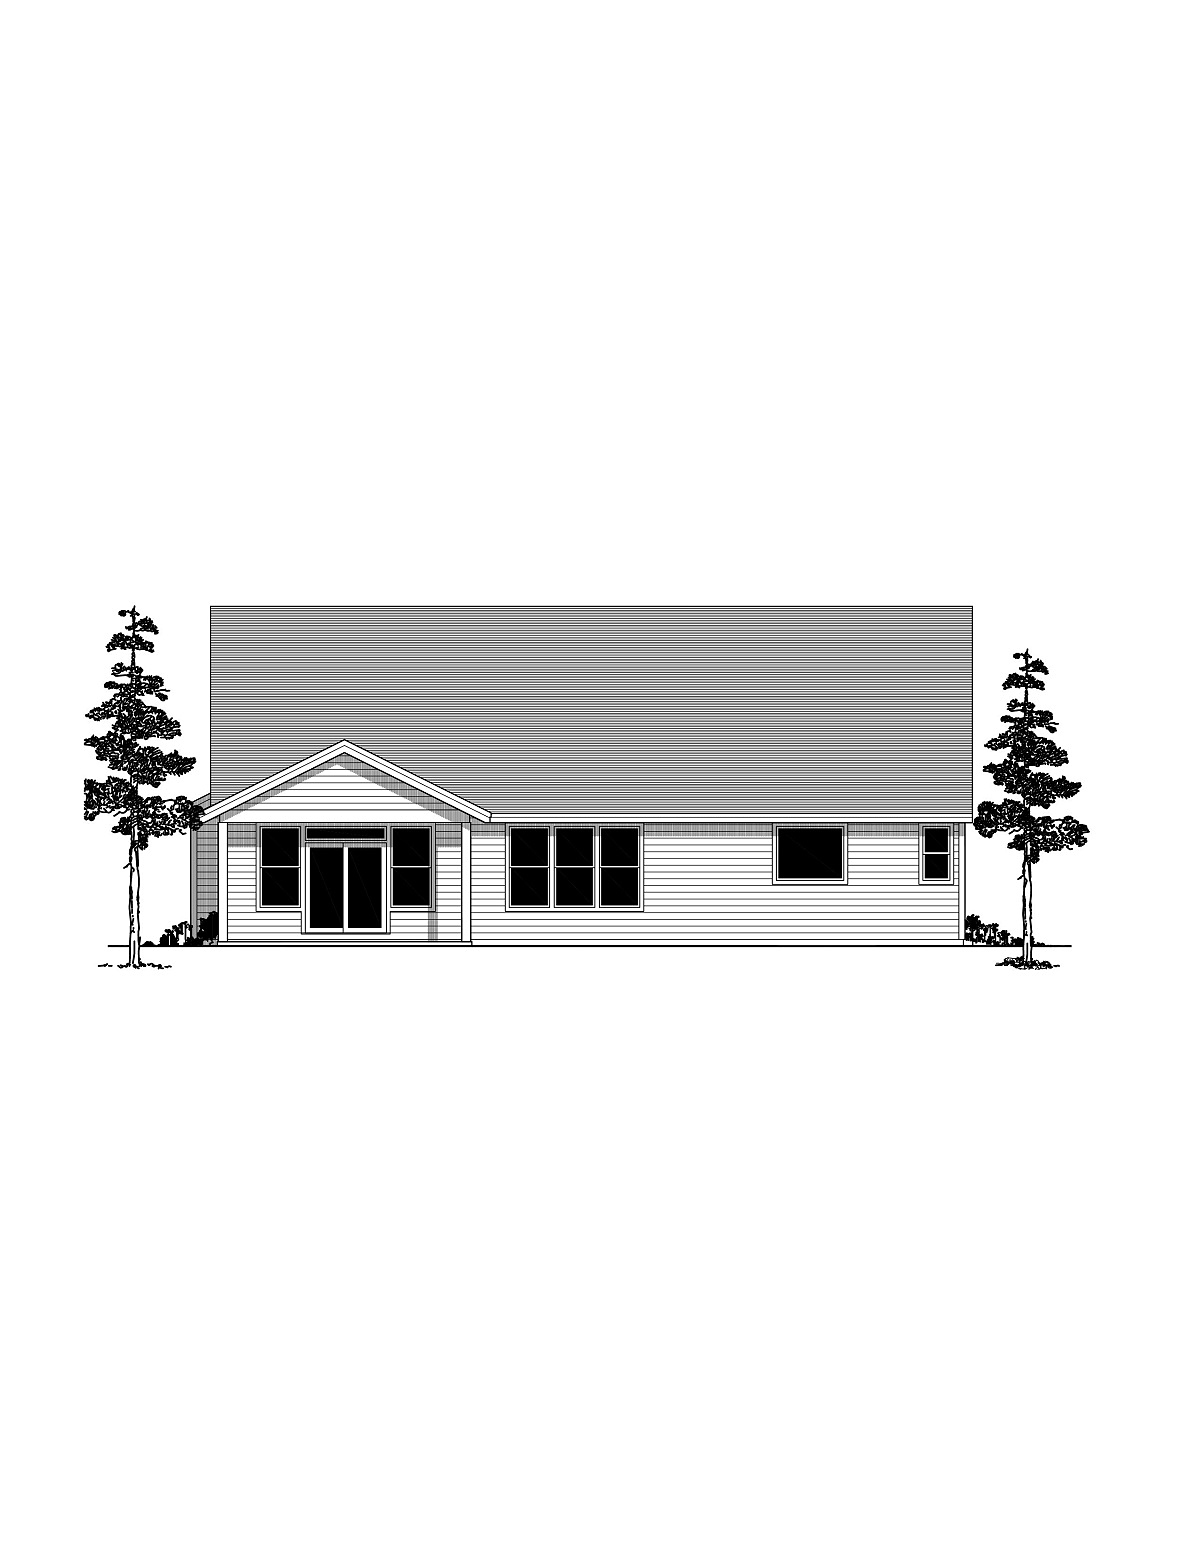 Craftsman, Ranch, Traditional House Plan 44409 with 4 Beds, 3 Baths, 2 Car Garage Rear Elevation